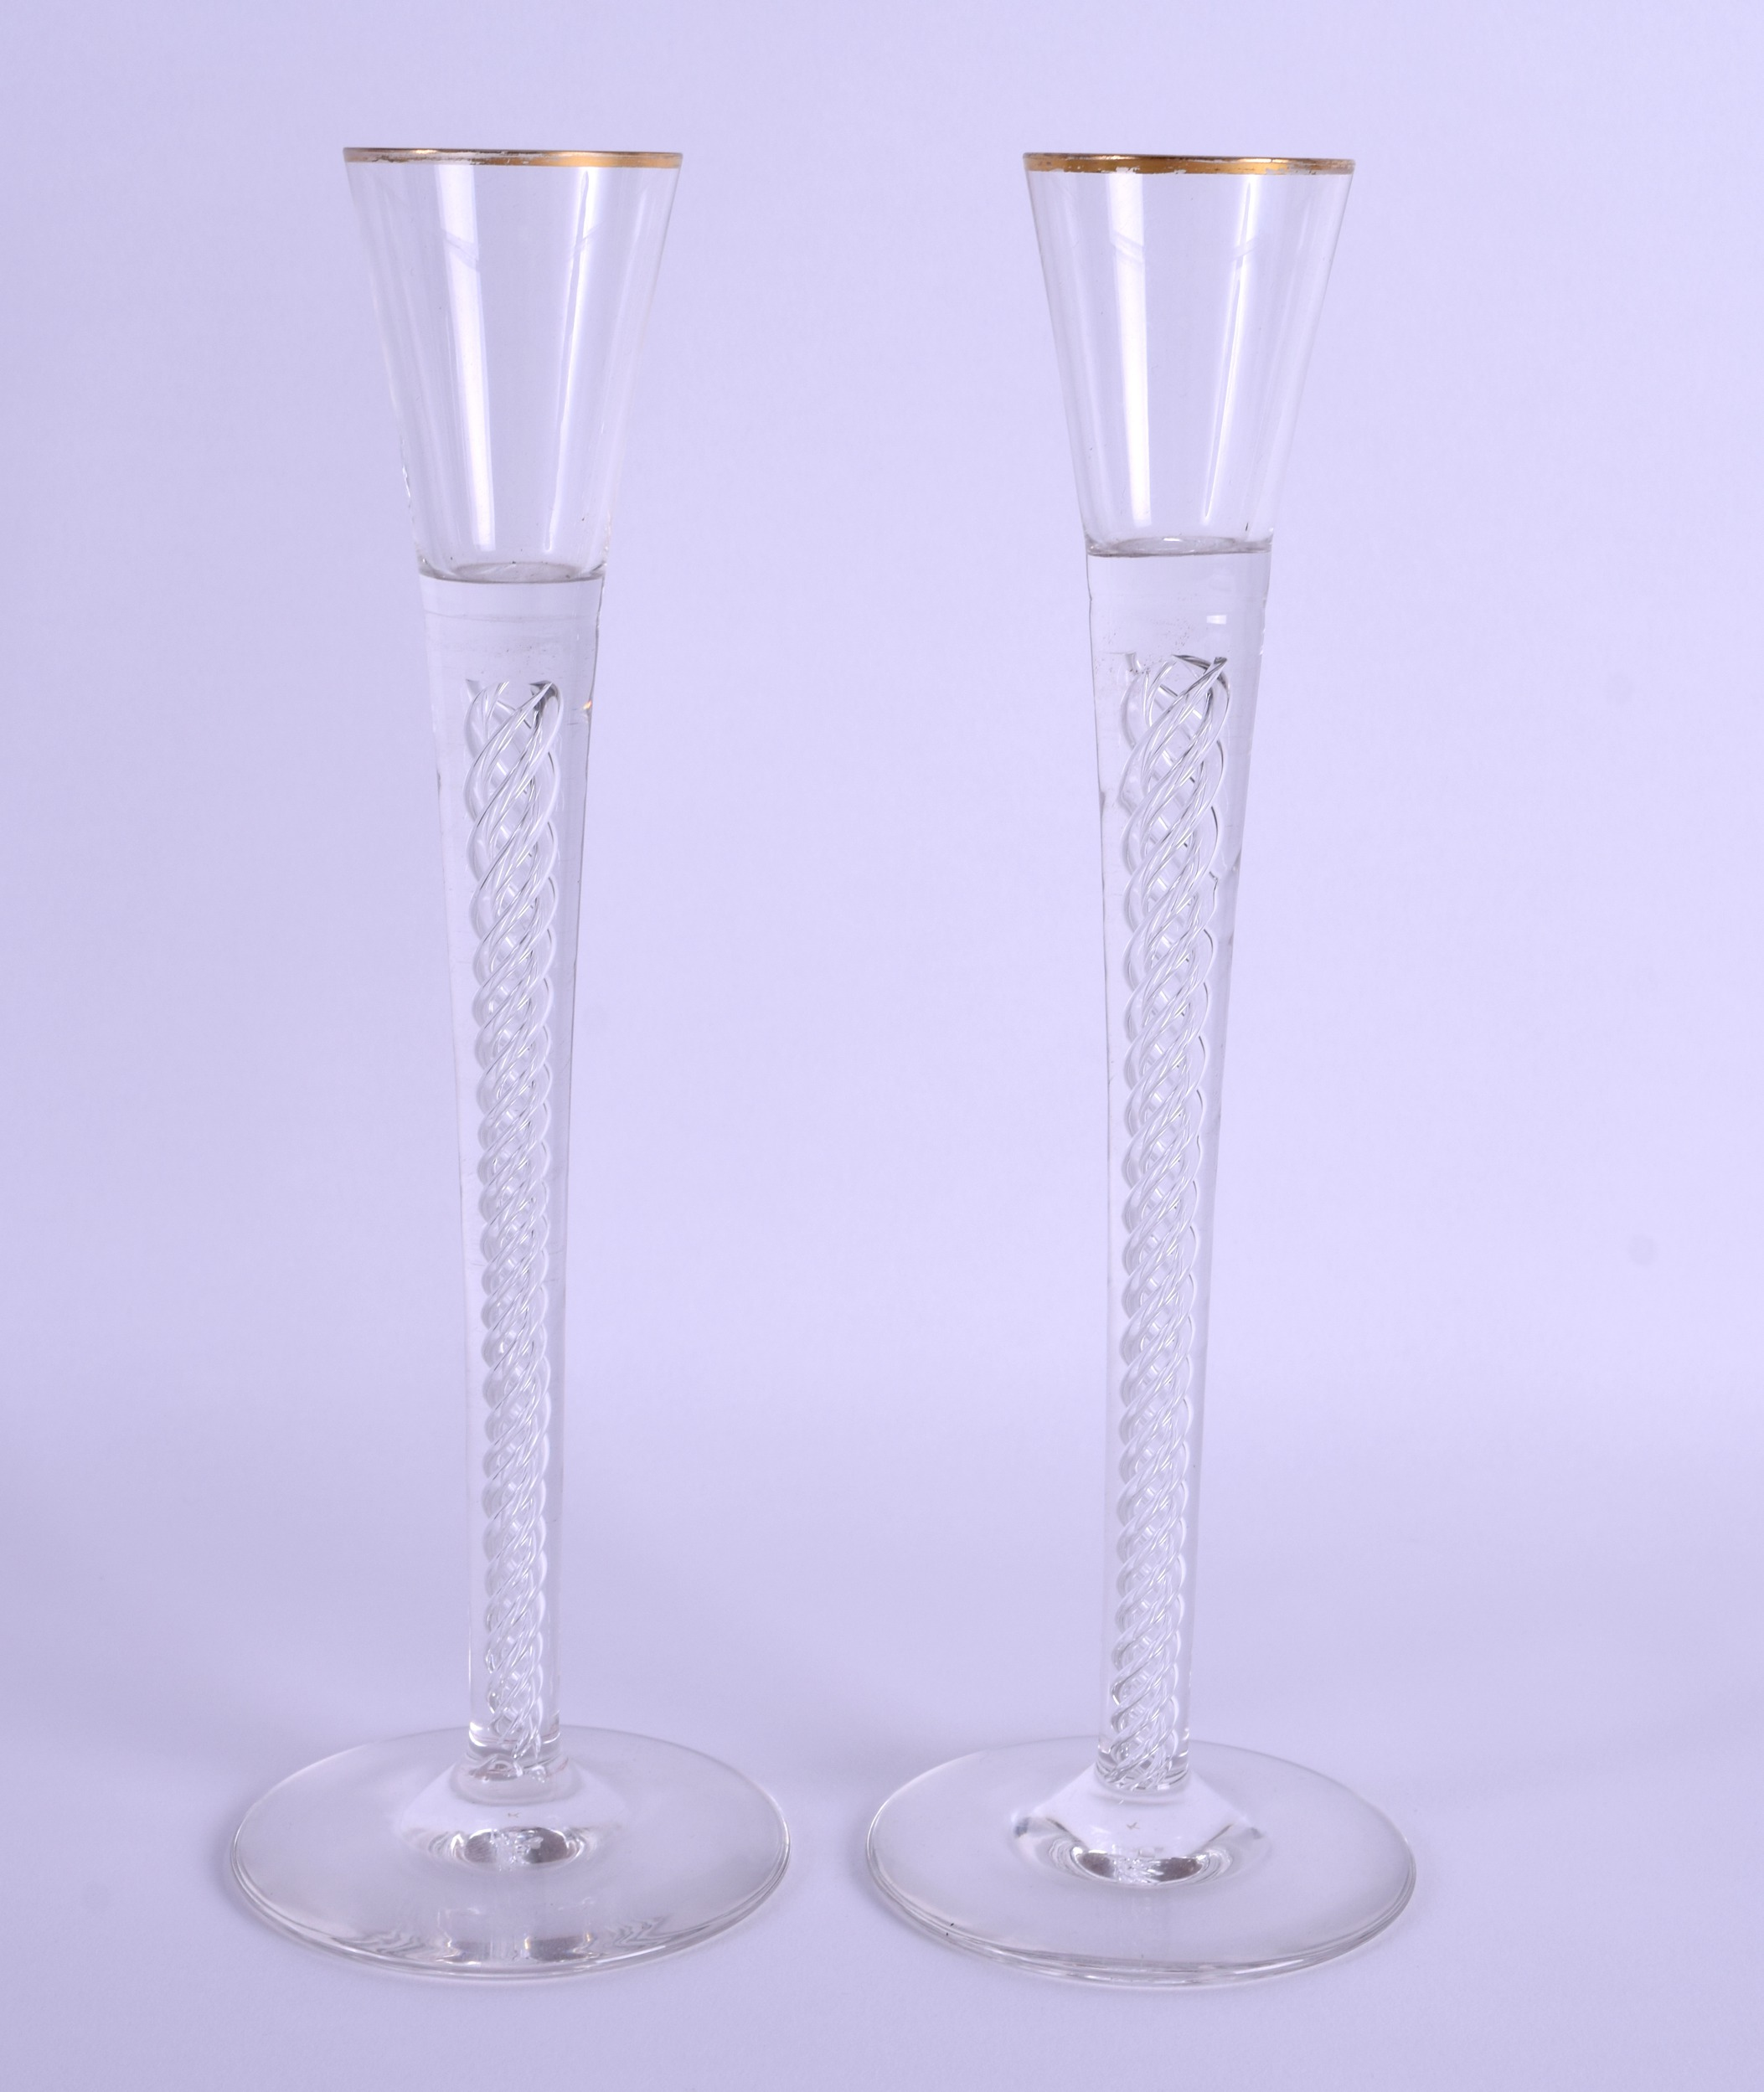 Lot 13 - A PAIR OF GEORGE III STYLE LIQUOR GLASSES with spiral twist stems. 24 cm high.